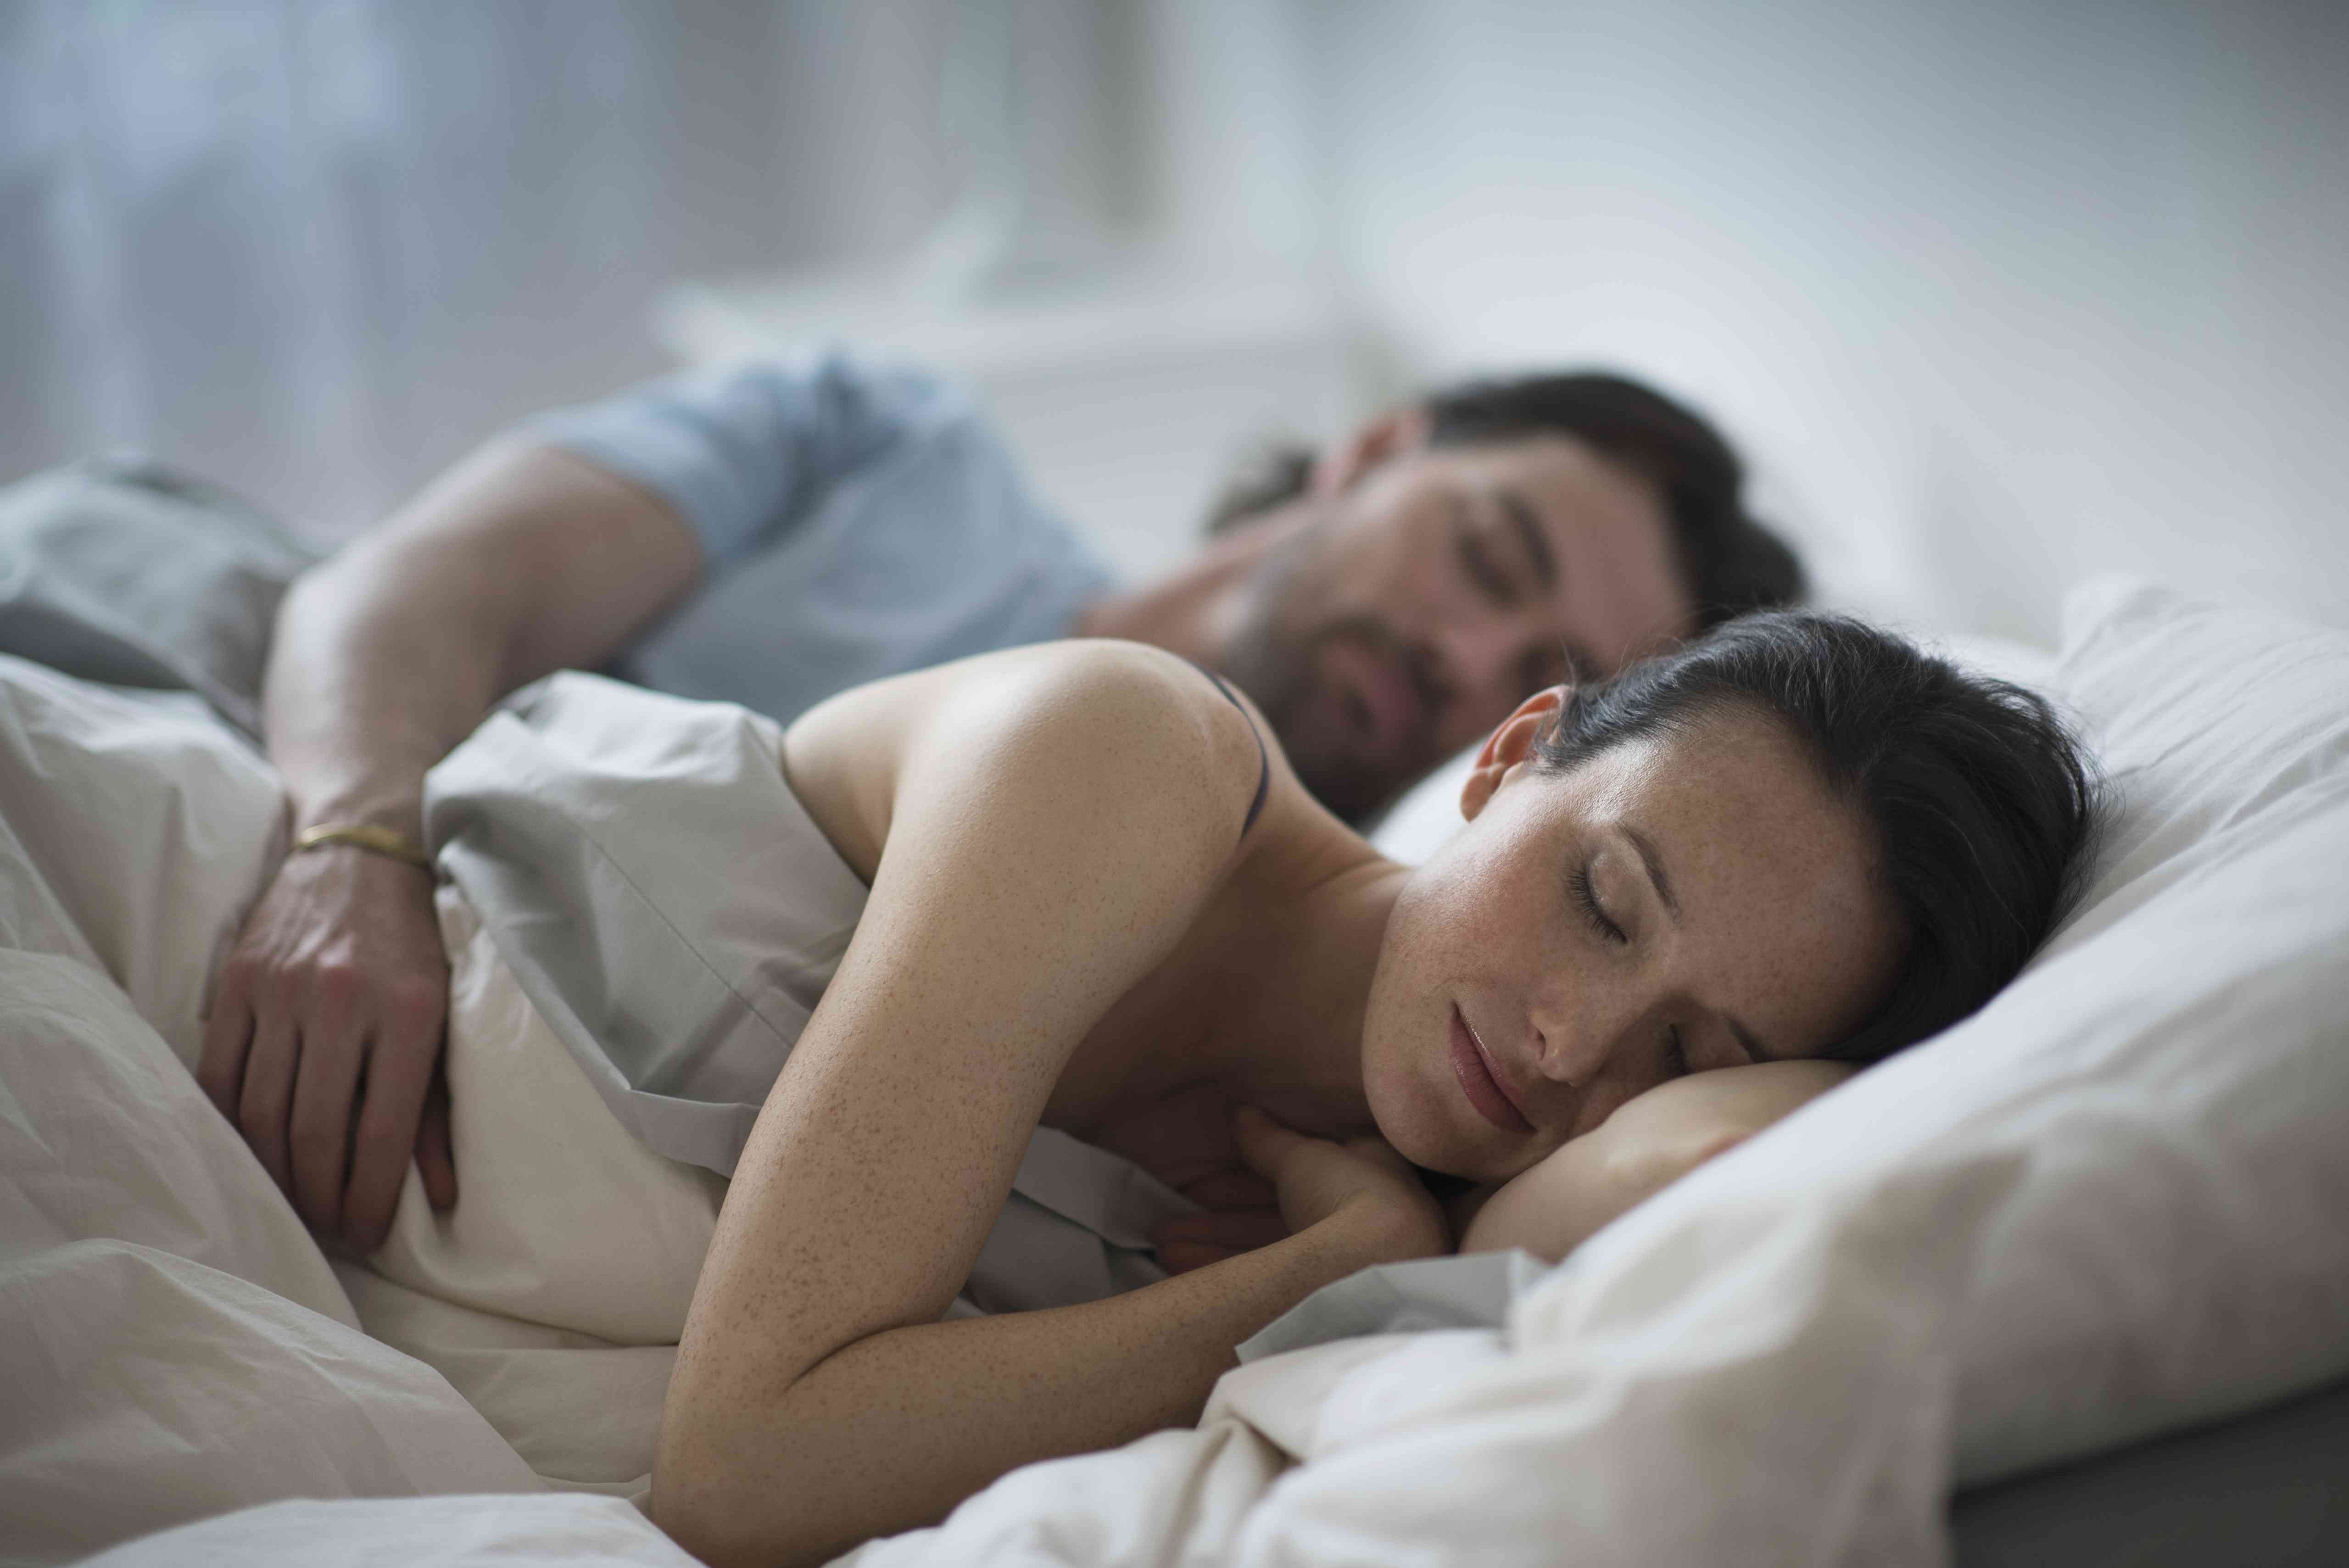 A couple sleeping together in bed at night